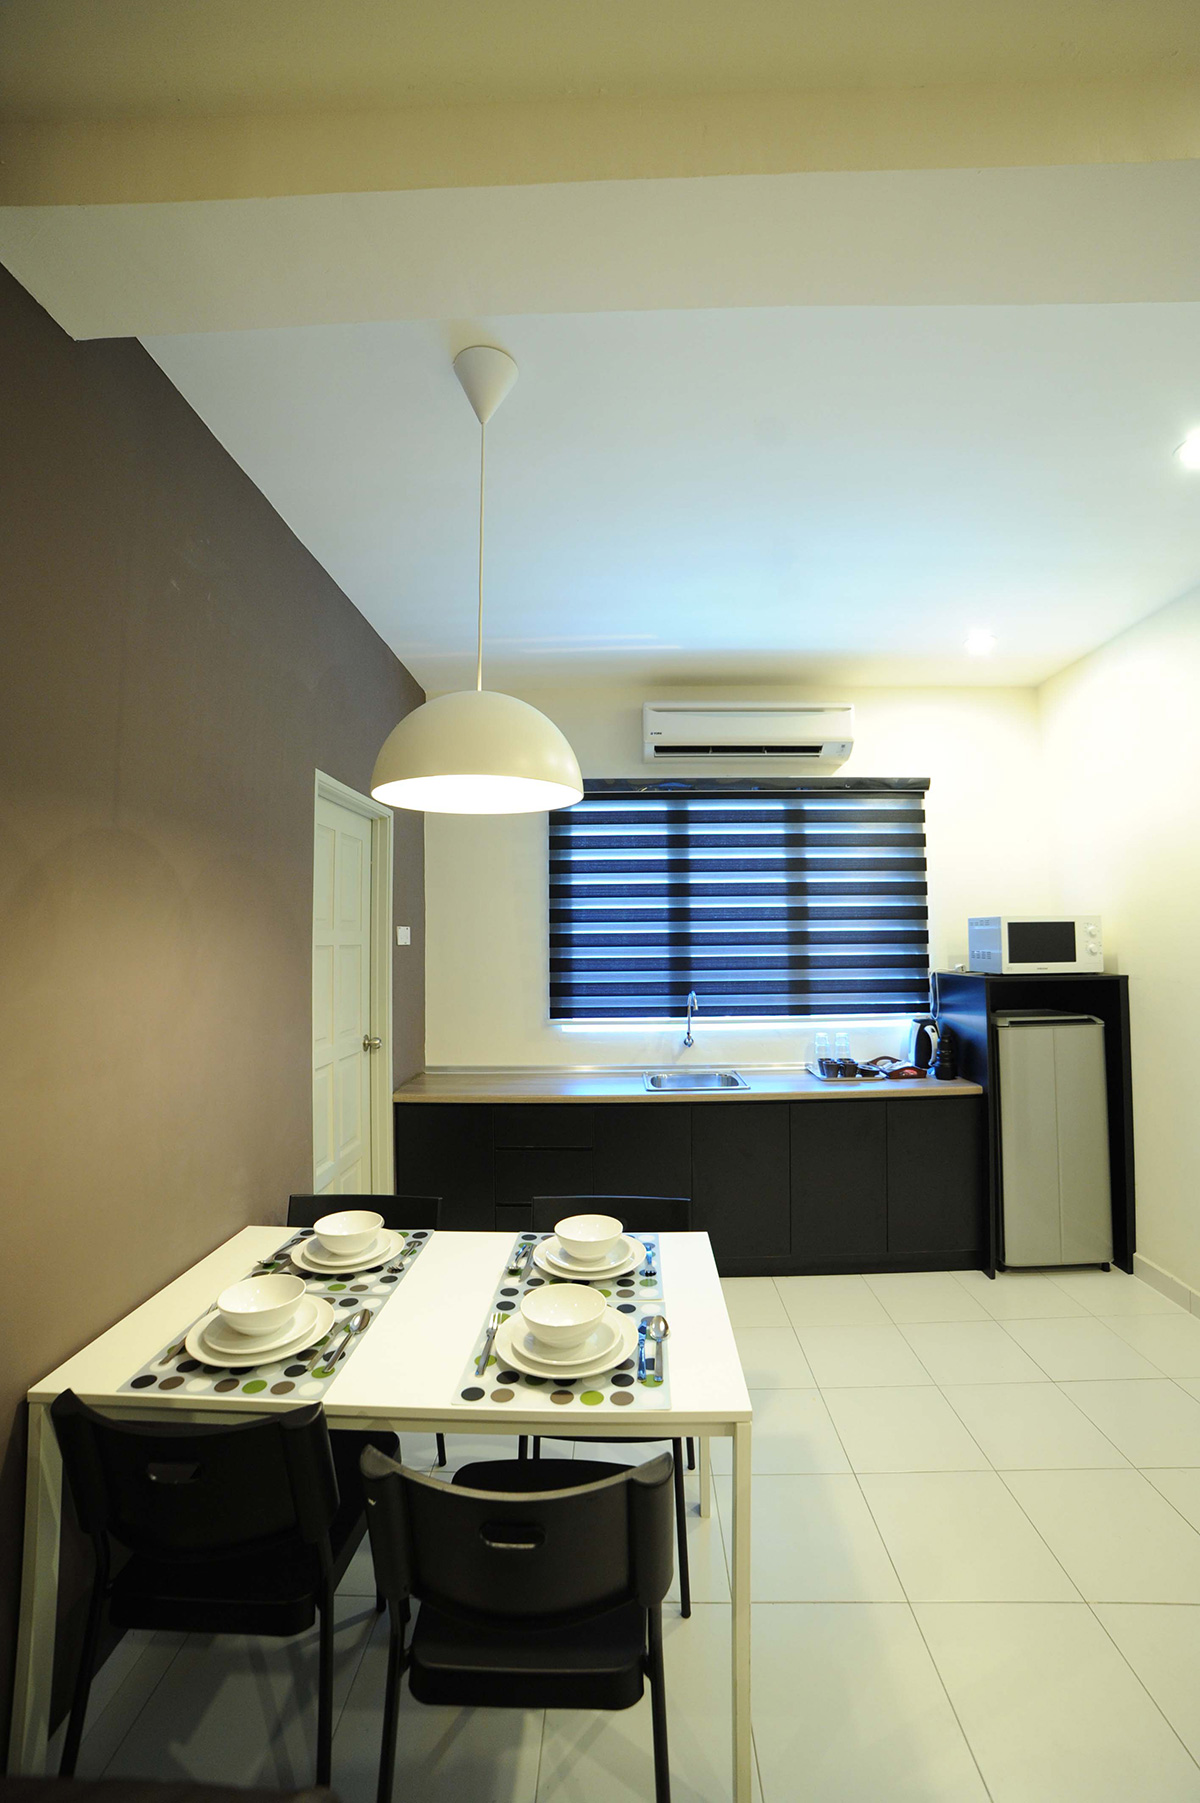 3 Bedroom Apartments Tampa: The Osborne Ipoh Serviced Apartments